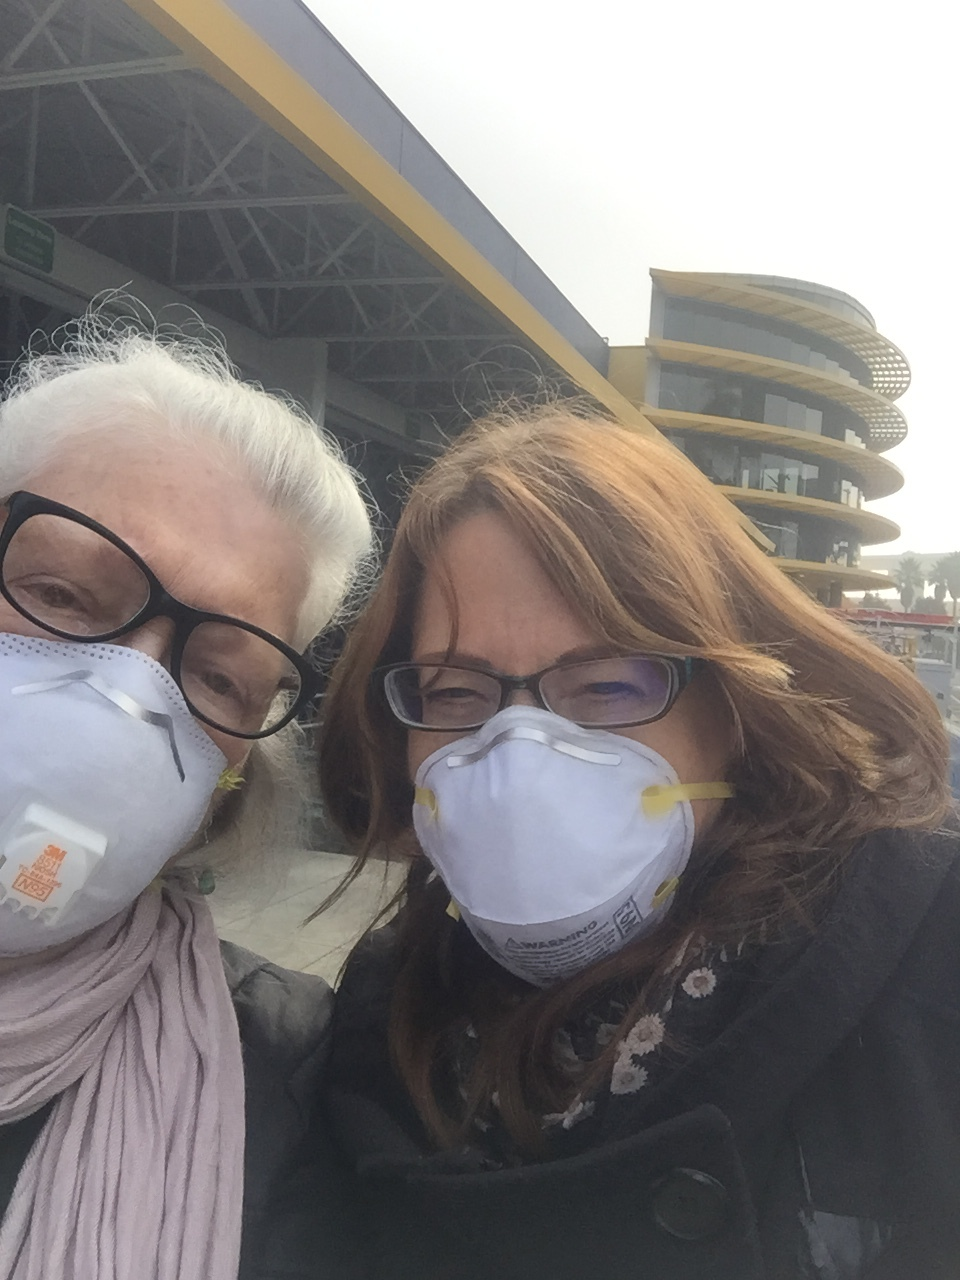 Me & Jan outside Ikea staying trying not to breath the smoke